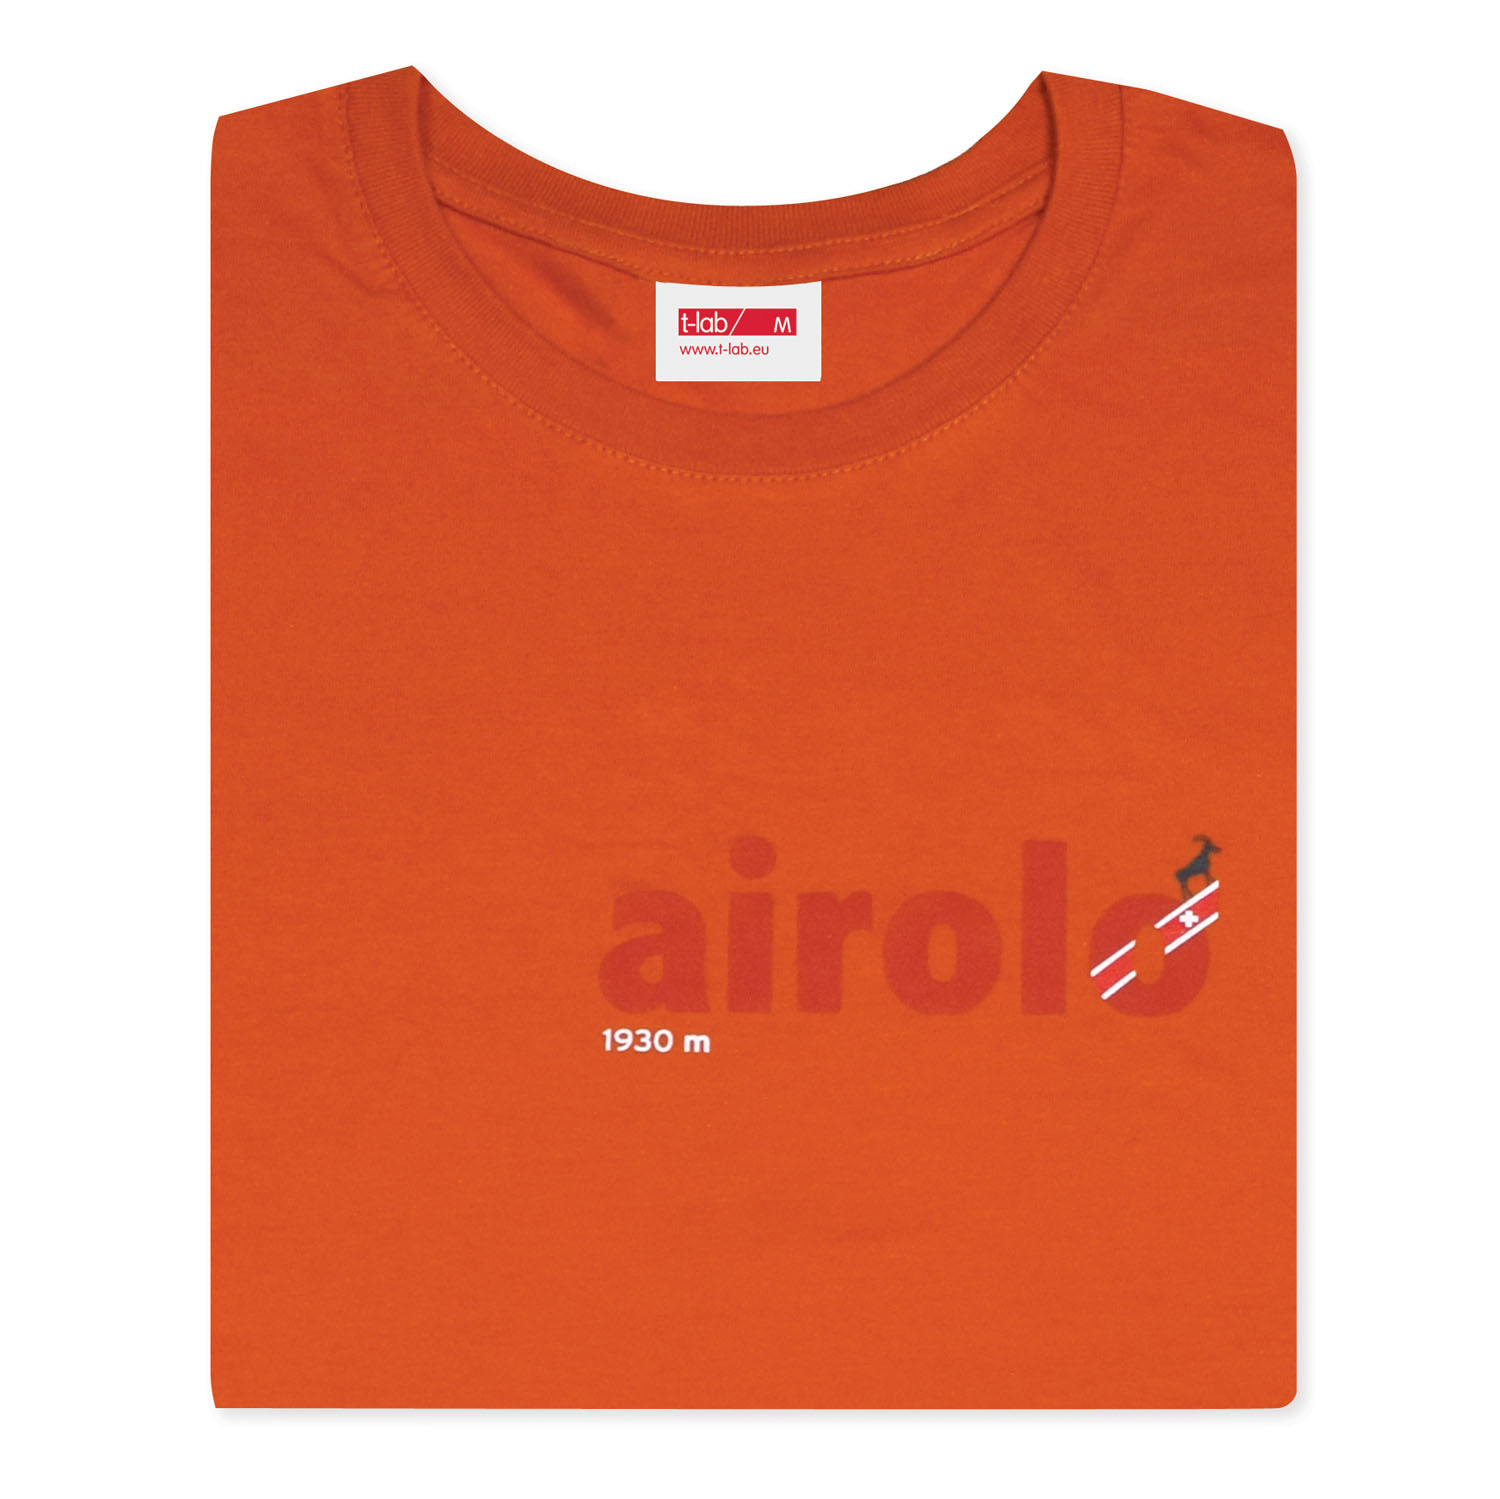 T-lab Airolo t-shirt orange full